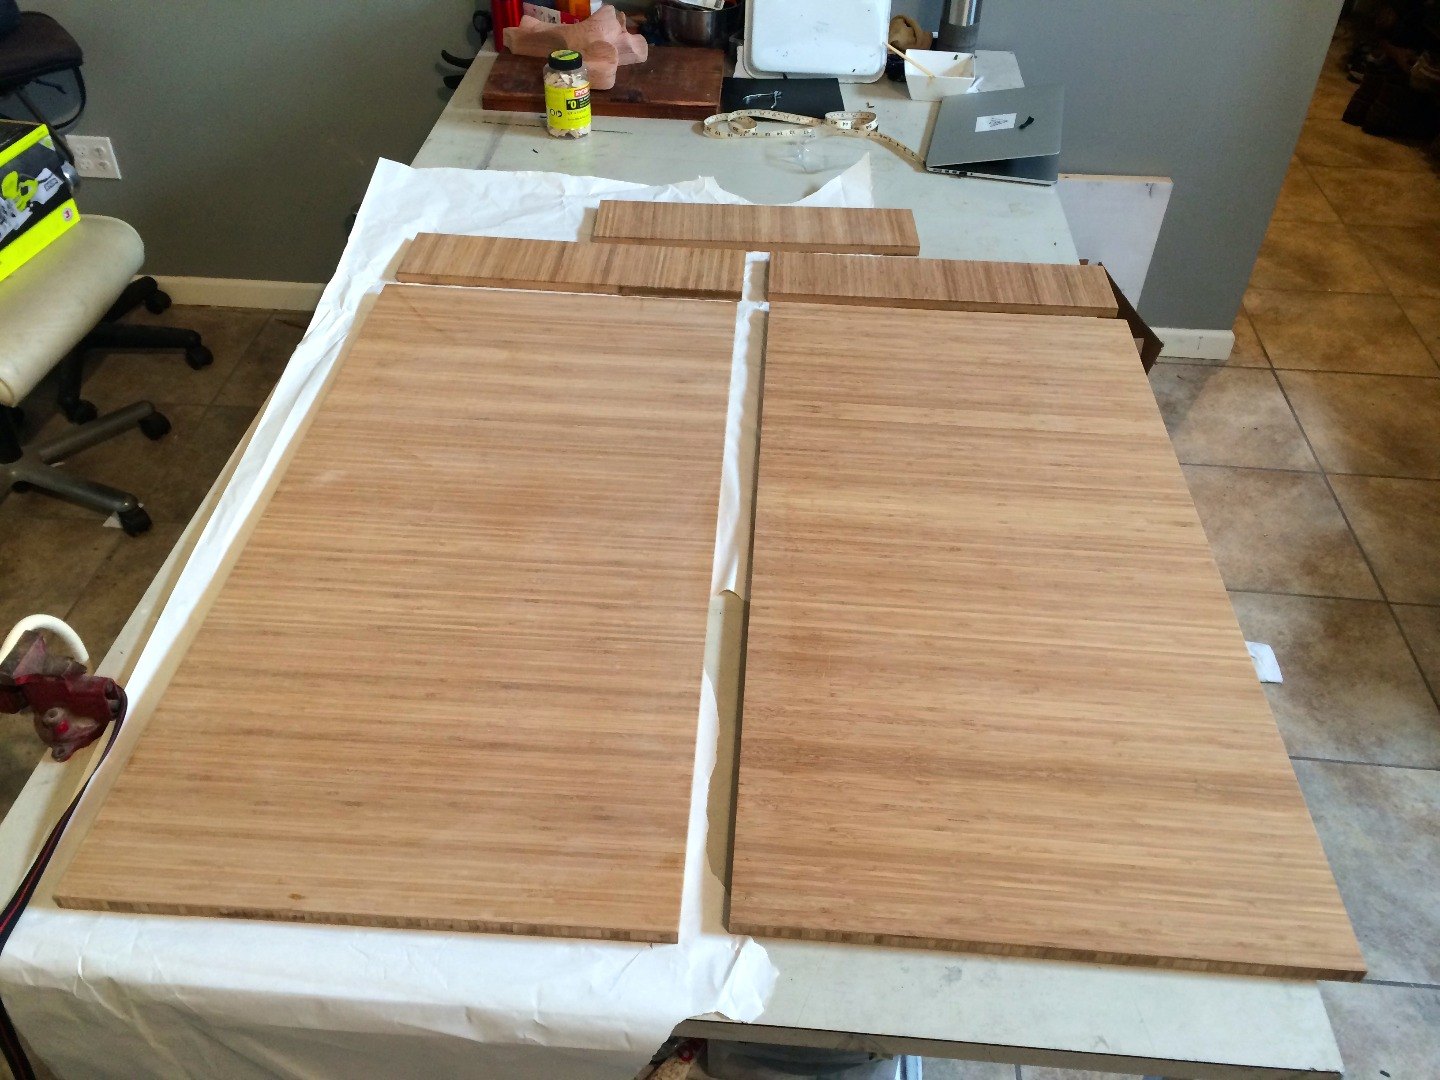 Picture of Cut Plyboo to Size on Table Saw